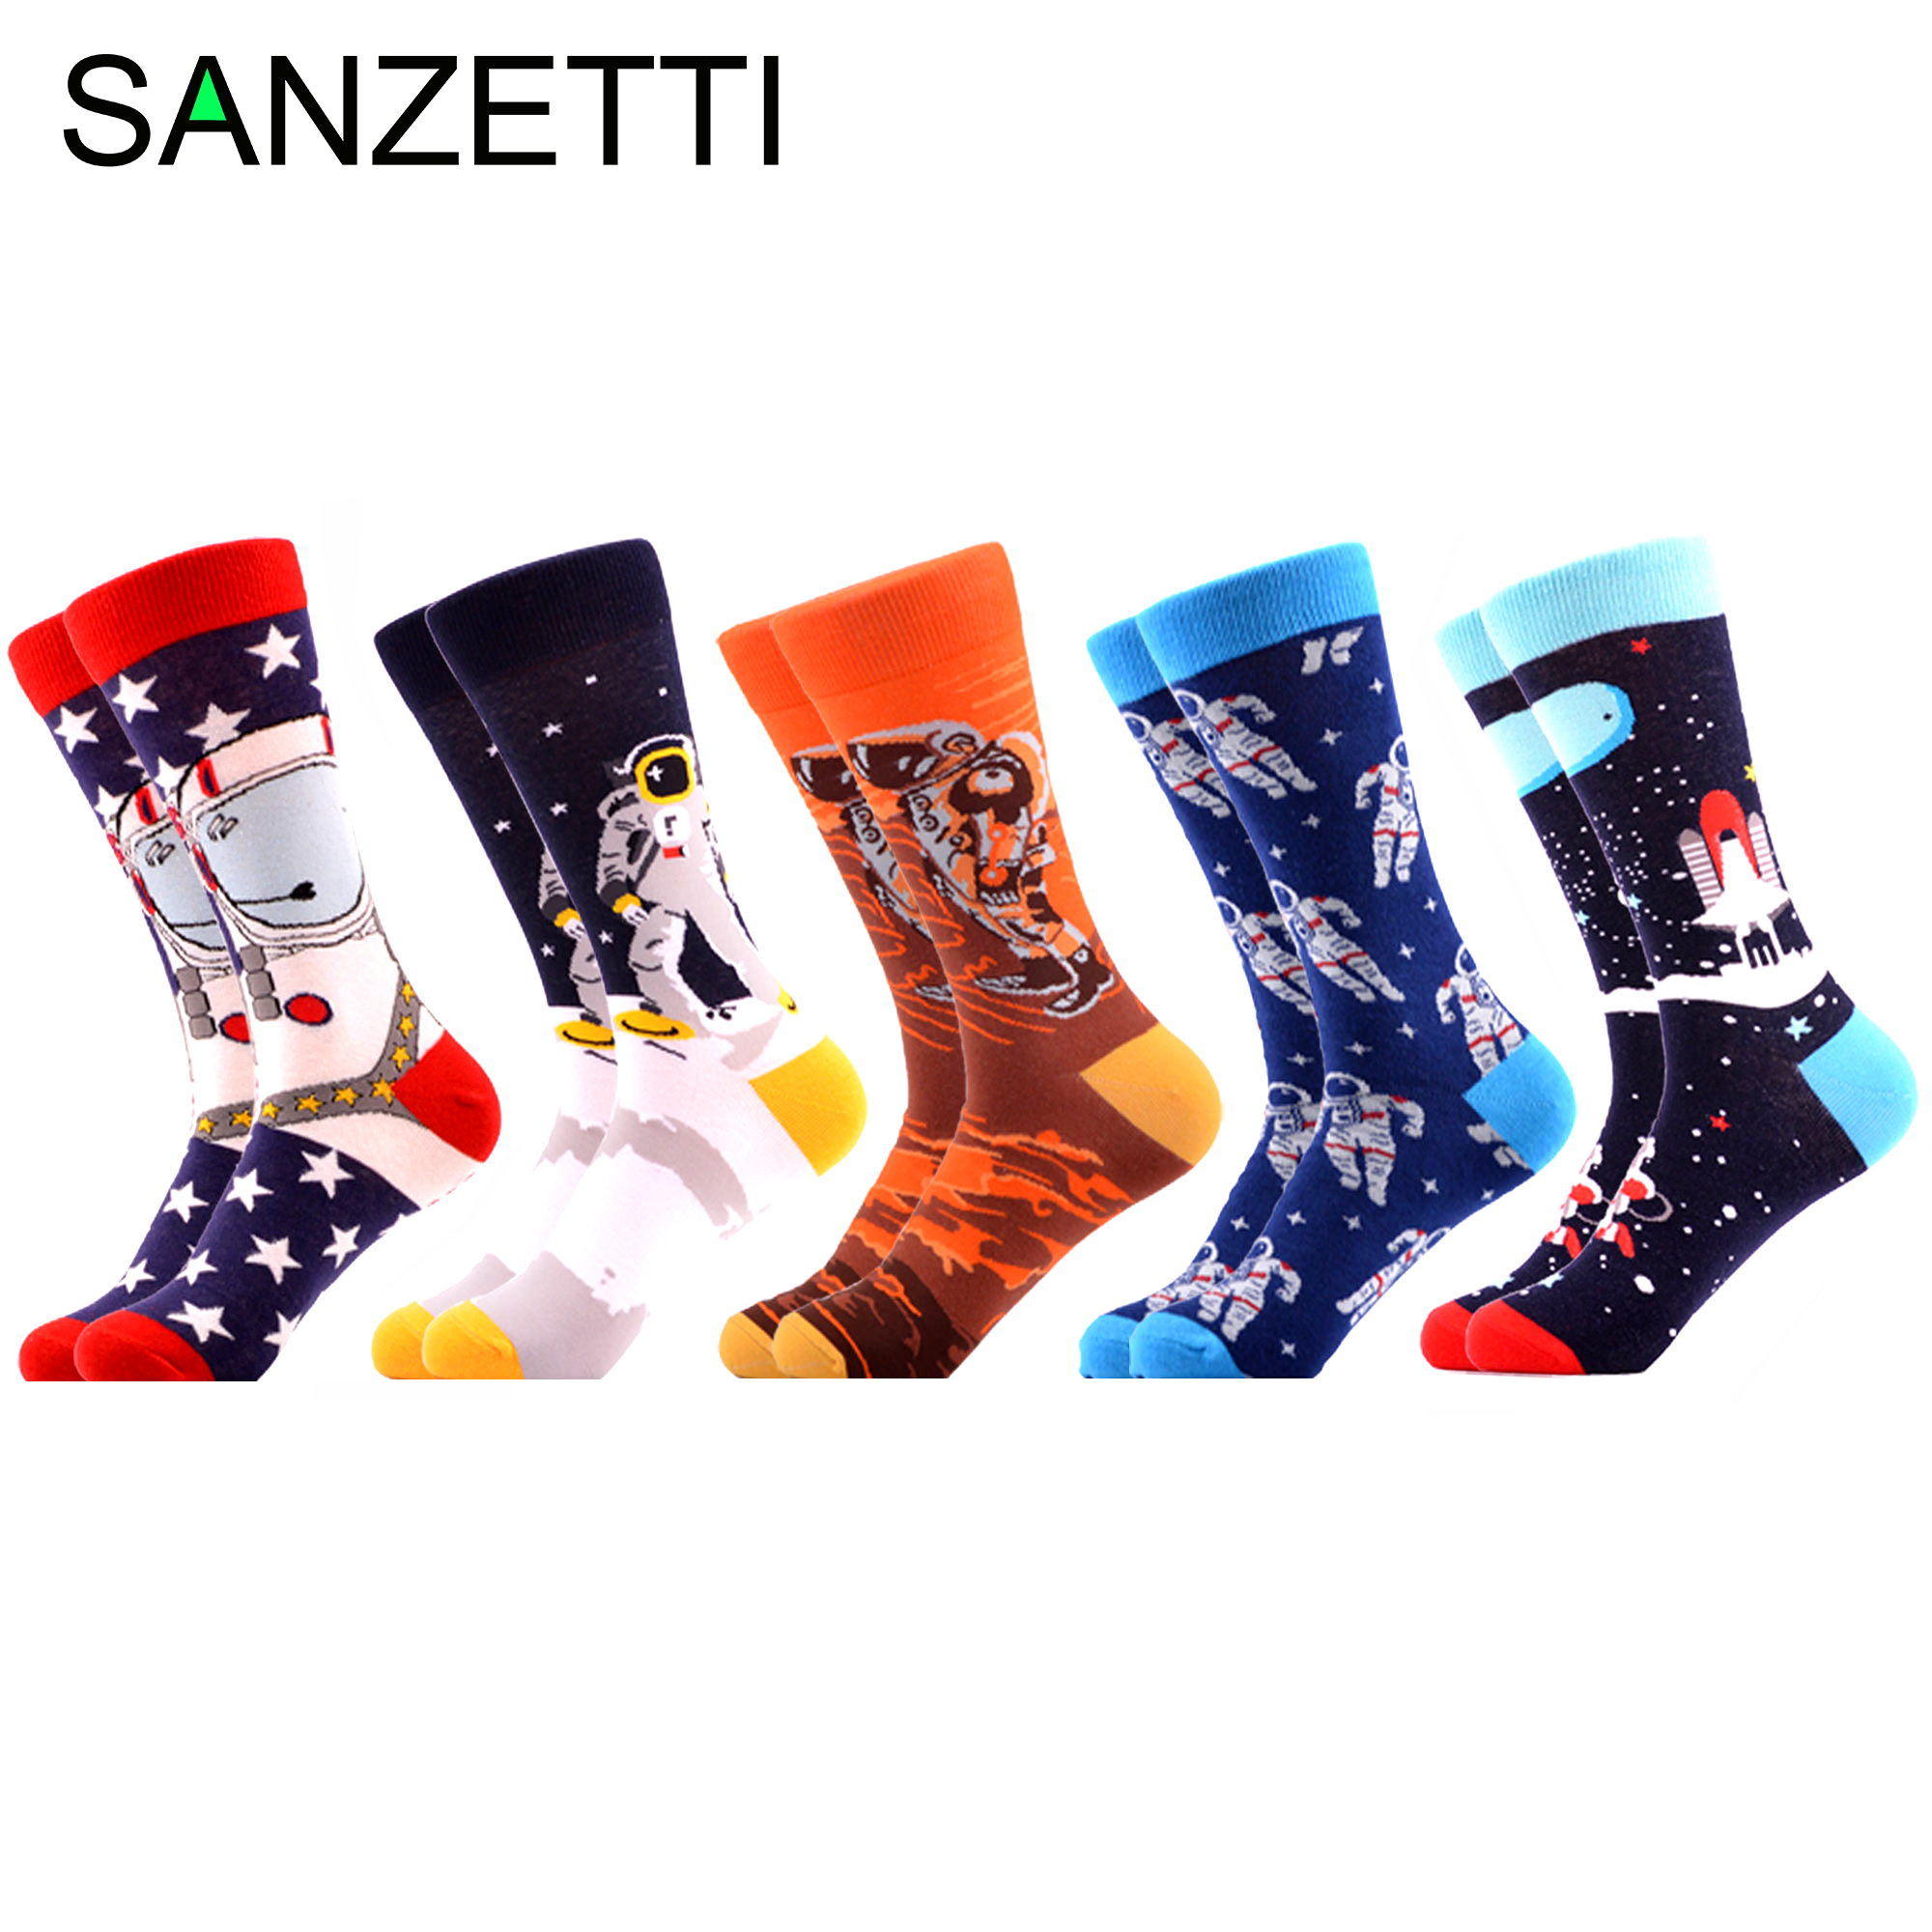 SANZETTI Brand 2020 Men Socks New Bright Colorful Space Animal Novelty Pattern Causal Dress Socks Funny Gift Happy Wedding Socks